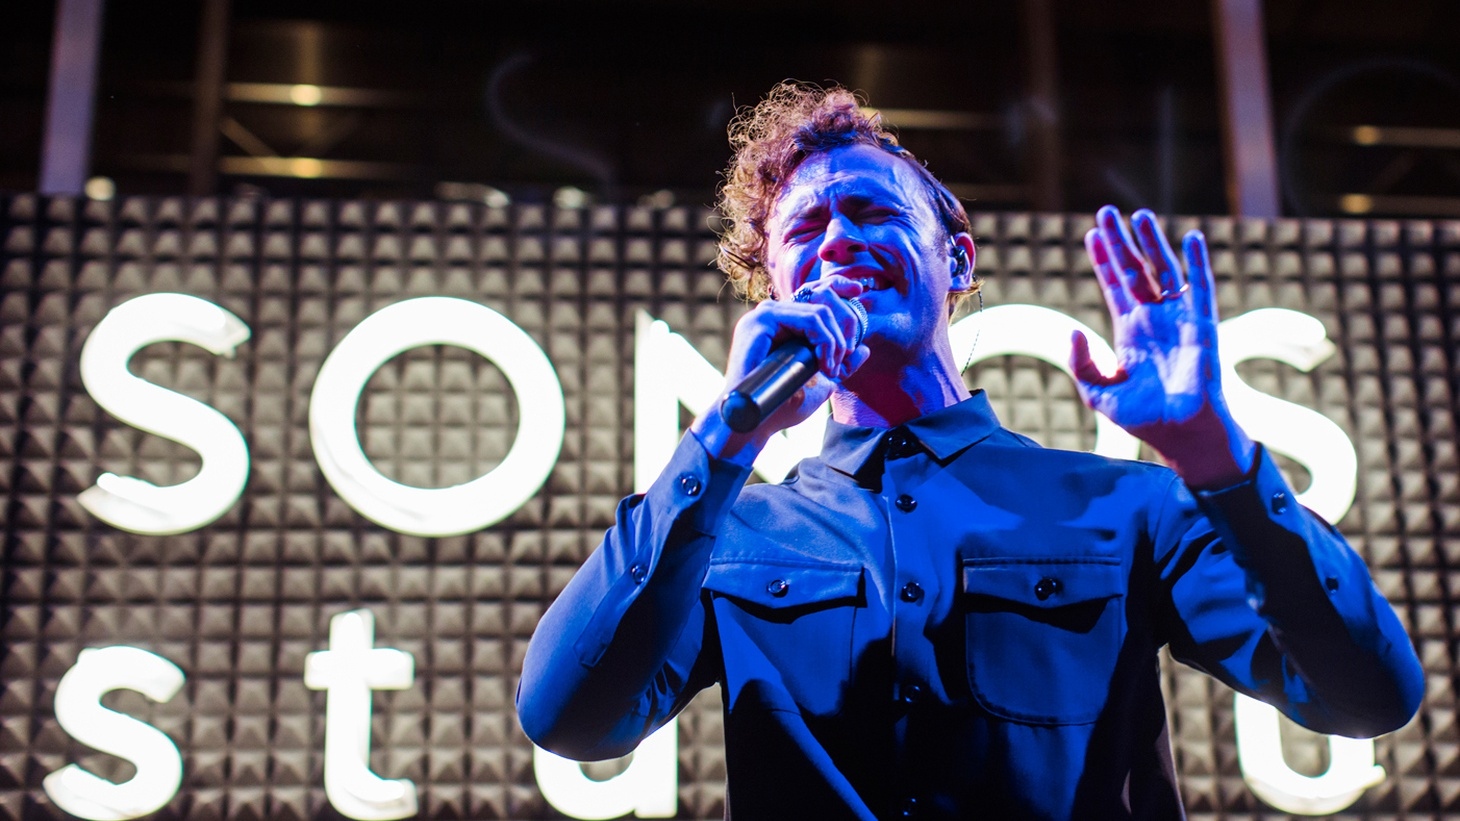 Nashville singer Mikky Ekko made a name for himself as a top-shelf collaborator with names like Rihanna, Gwen Stefani and Chris Malinchak. At an intimate setting in New York City's Neuehouse, Mikky performs songs off his upcoming release for Morning Becomes Eclectic.